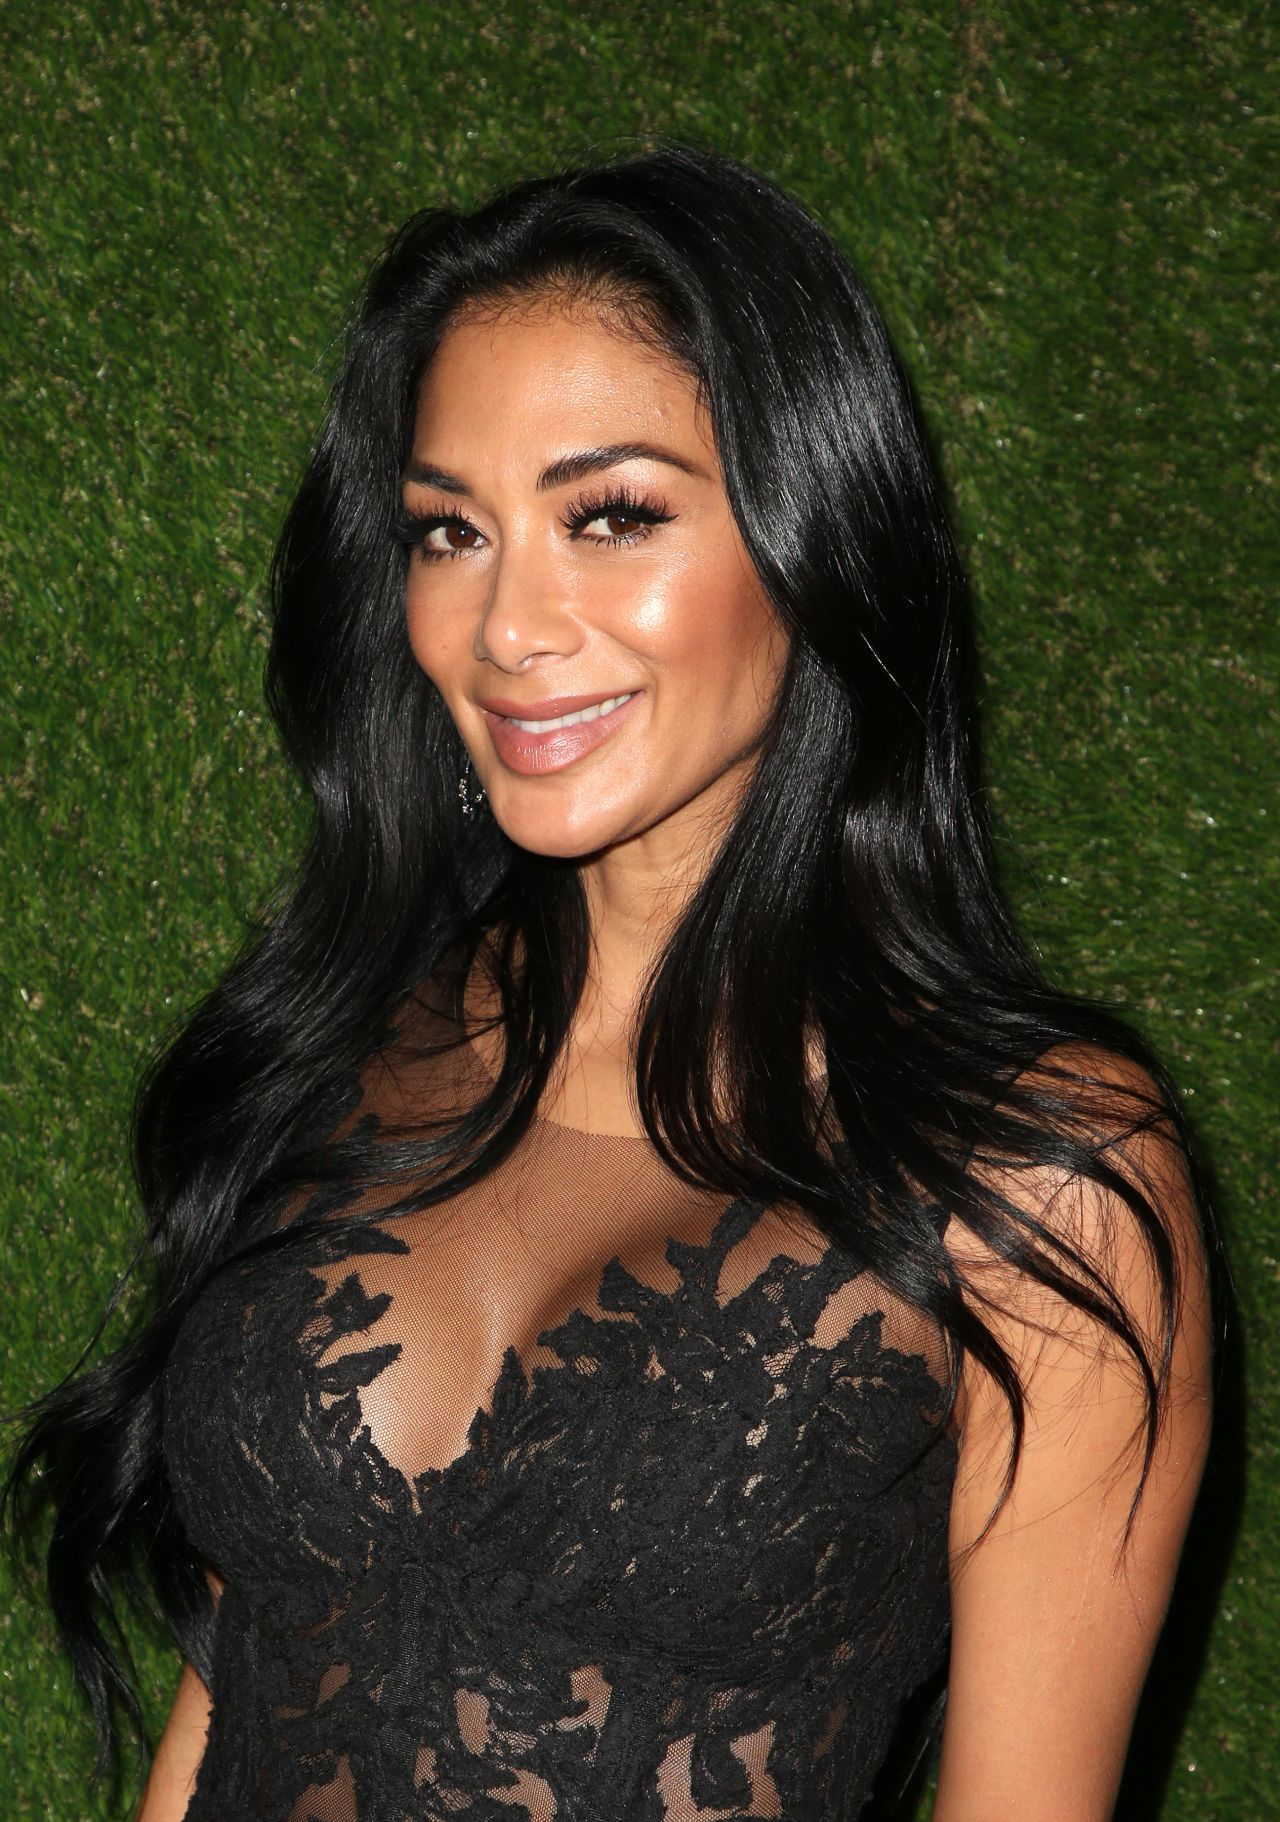 Nicole Scherzinger Golden Globe Awards 2018 After Party Nicole Scherzinger